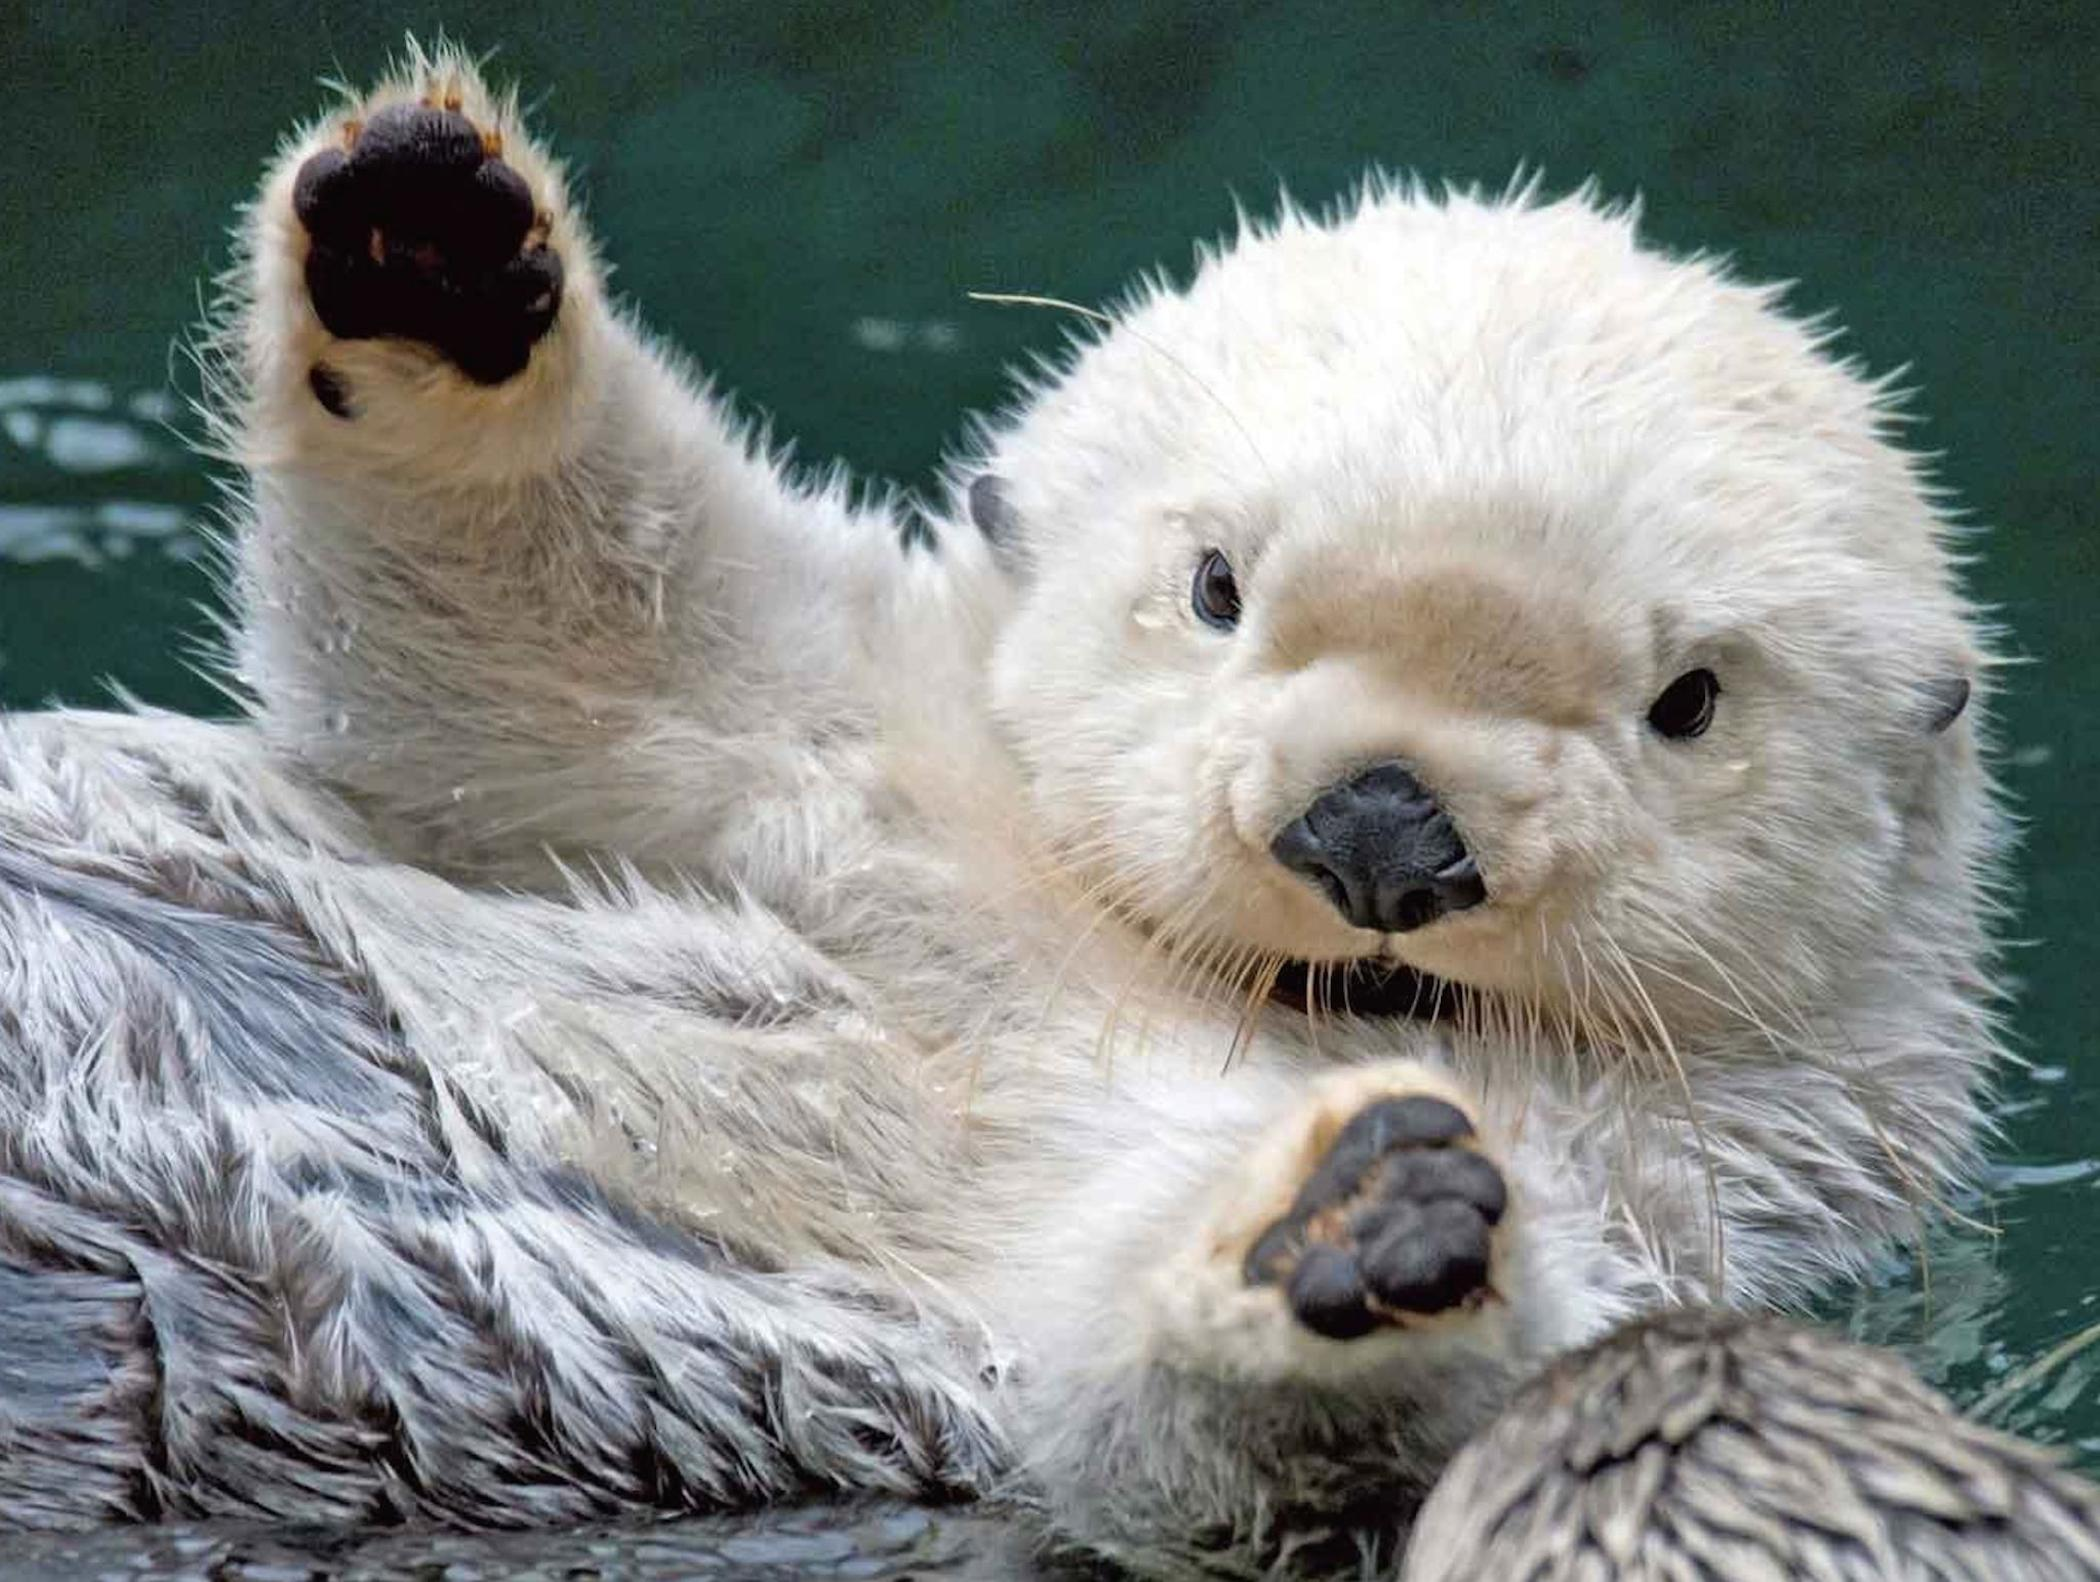 How Much Is A Lambo >> Cute Baby Sea Otter Wallpaper - Free Baby Animal Download